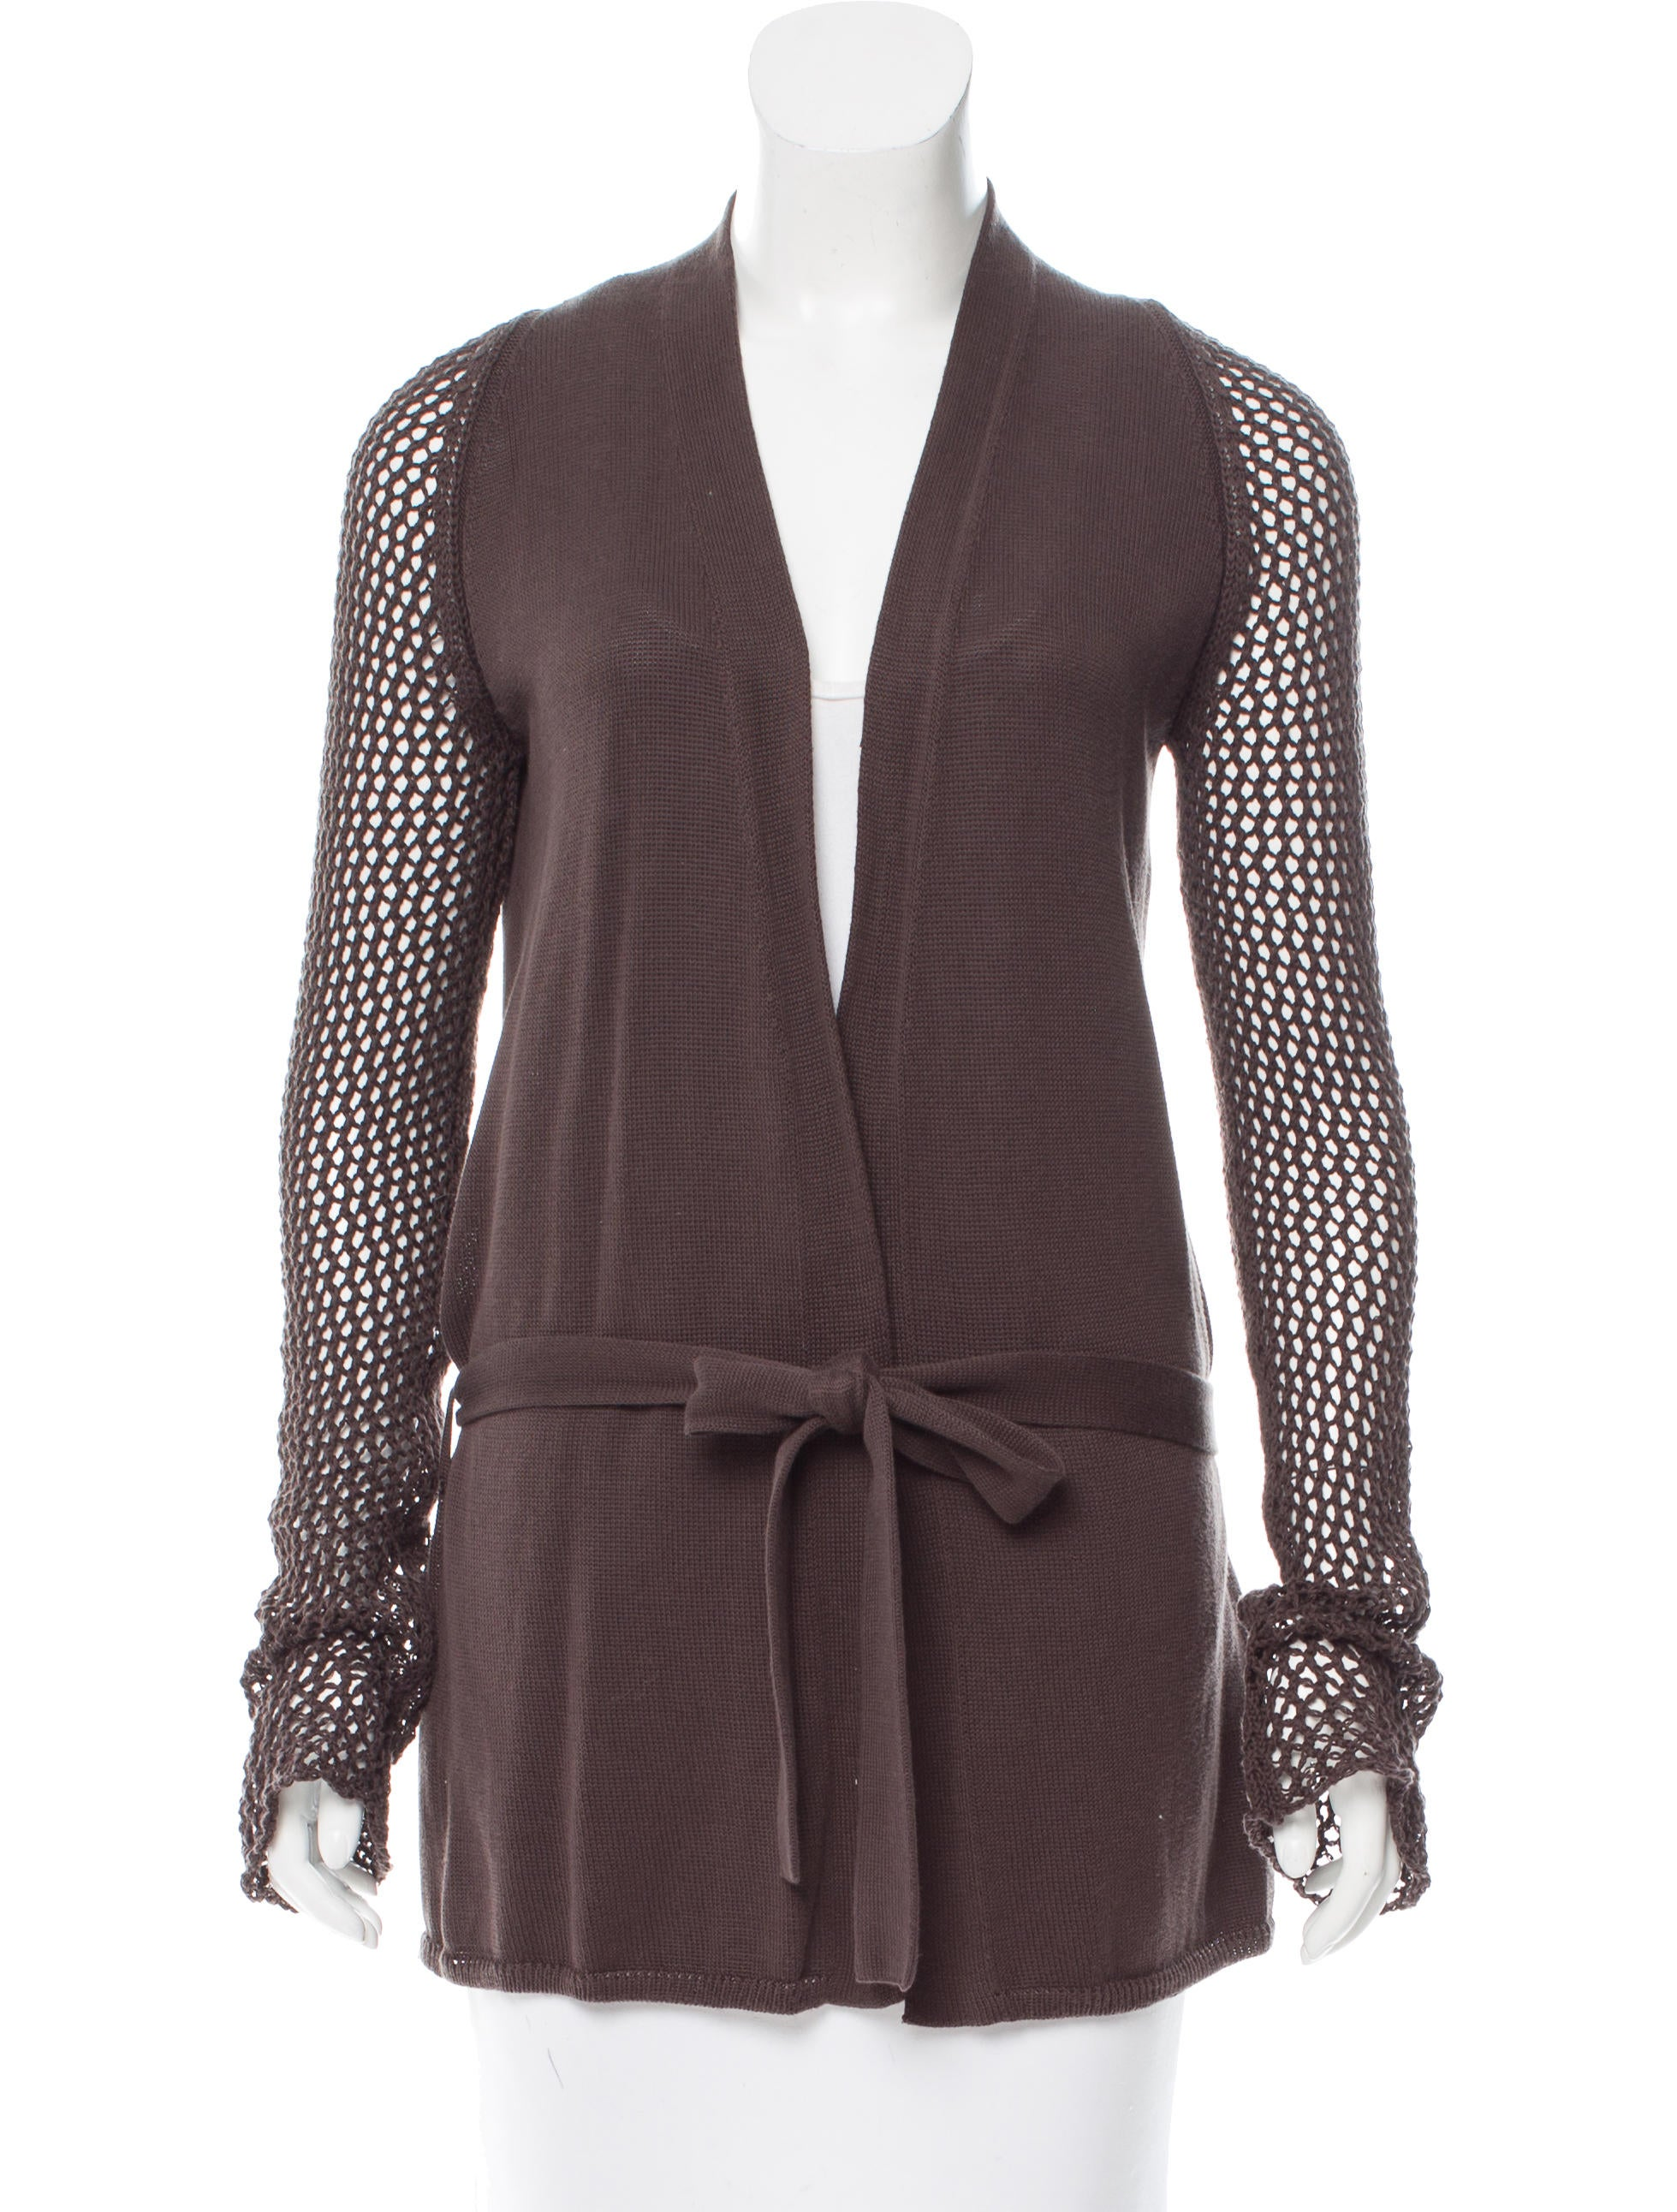 Shop Calvin Klein, Open-Knit Cardigan at Lord & Taylor. Free shipping on any order over $